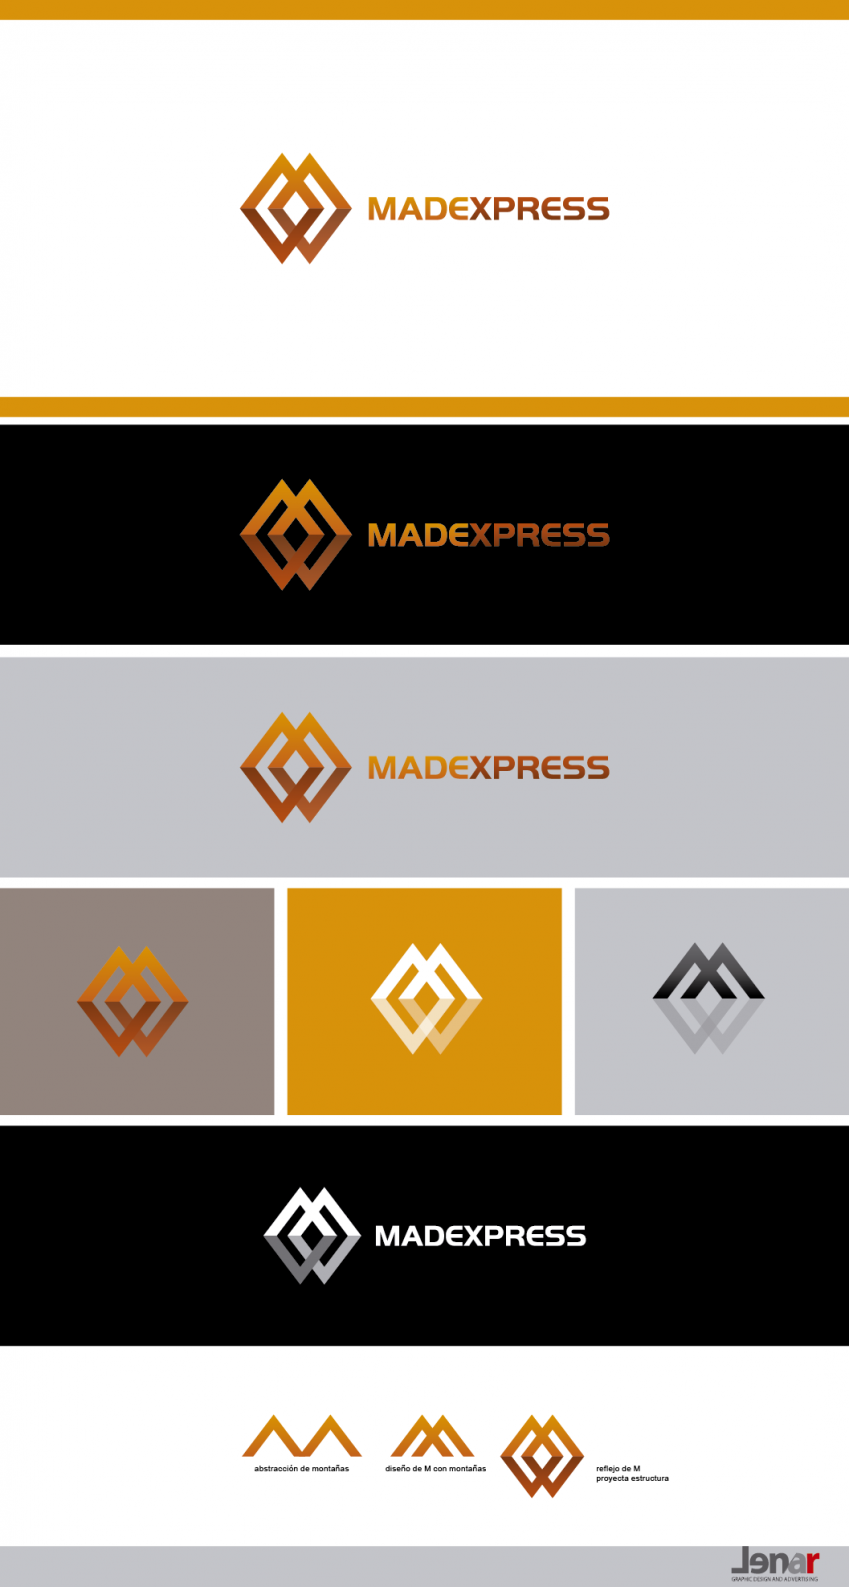 madexpress1